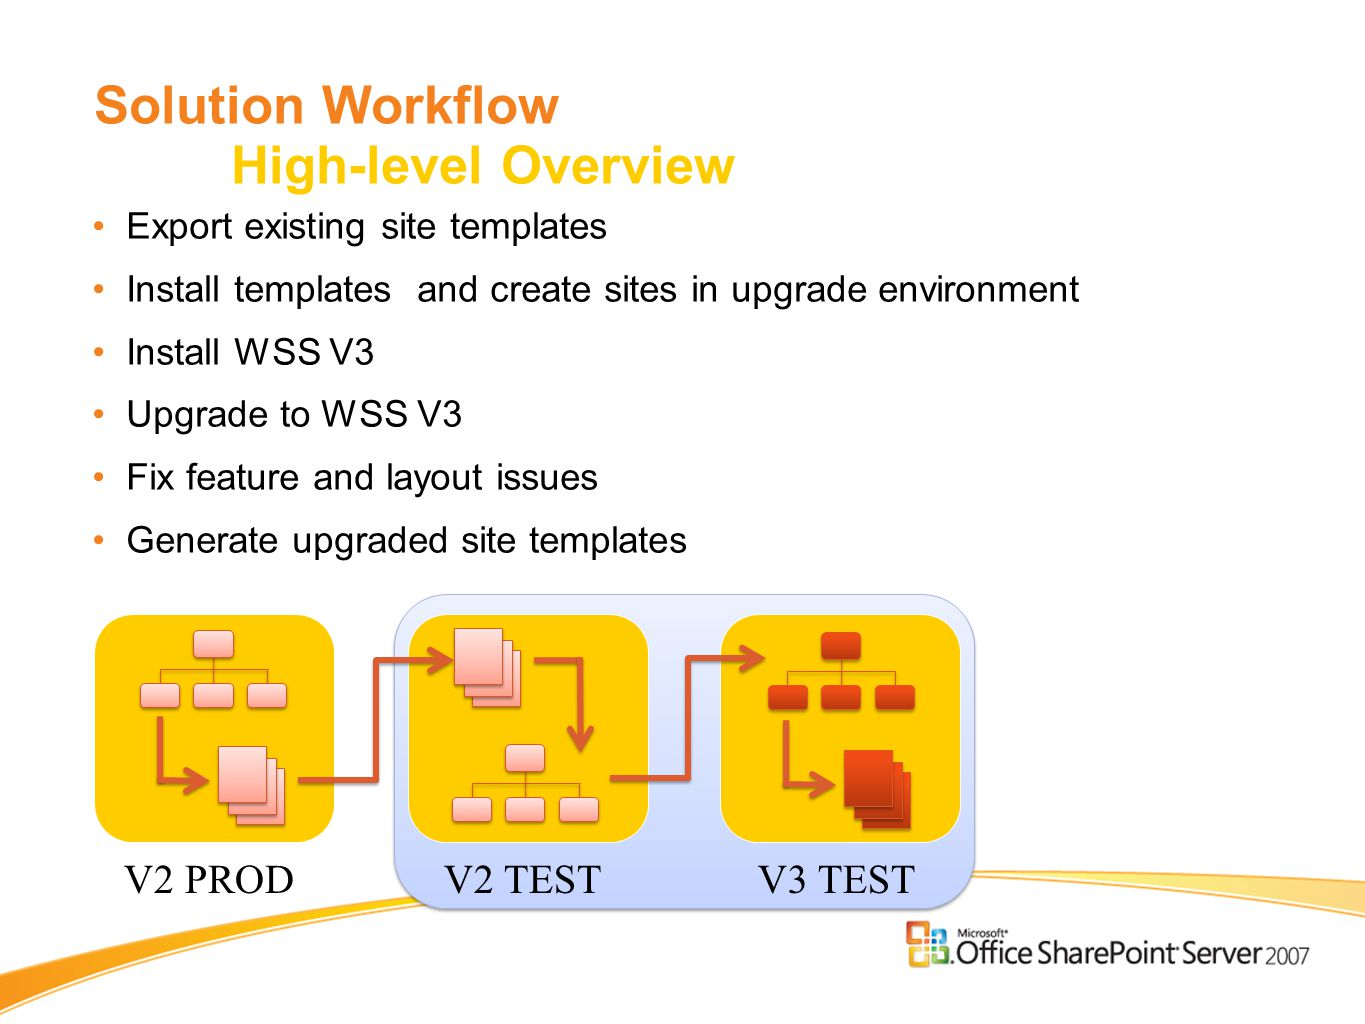 Solution Workflow High-level Overview Export existing site templates Install templates and create sites in upgrade environment Install WSS V3 Upgrade to WSS V3 Fix feature and layout issues Generate upgraded site templates V2 PRODV2 TESTV3 TEST